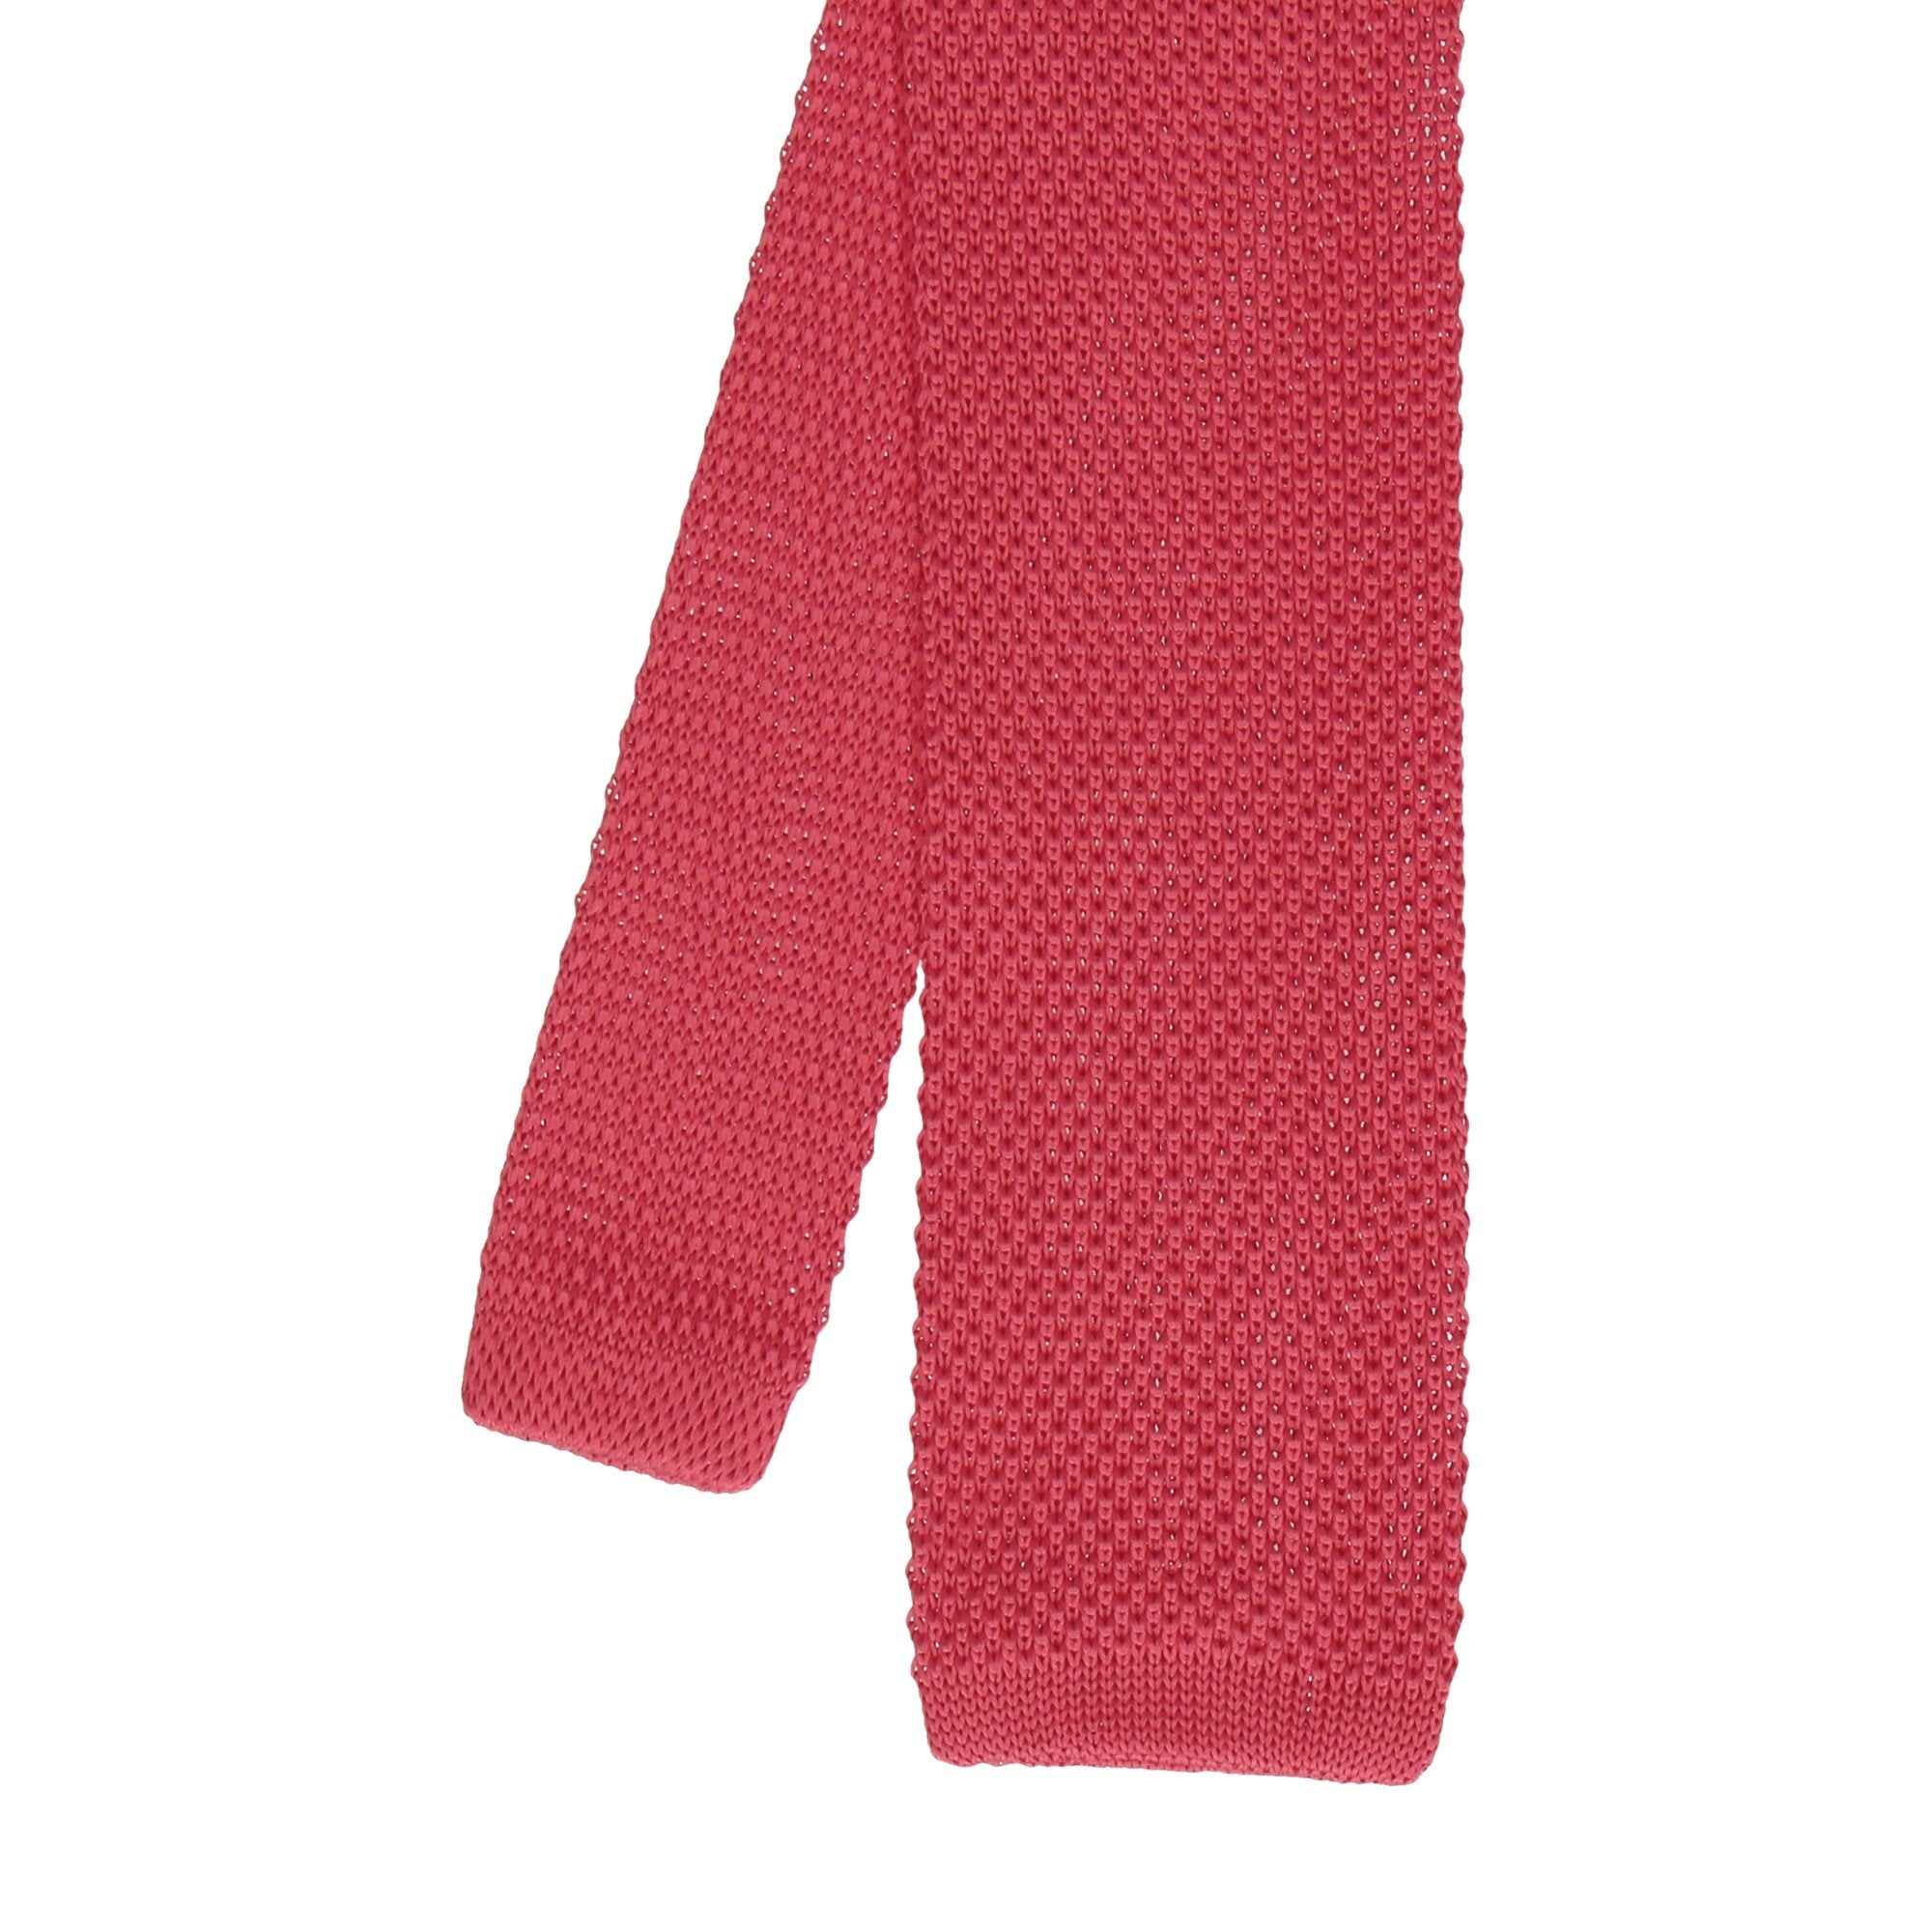 Knitted Tie in Crimson